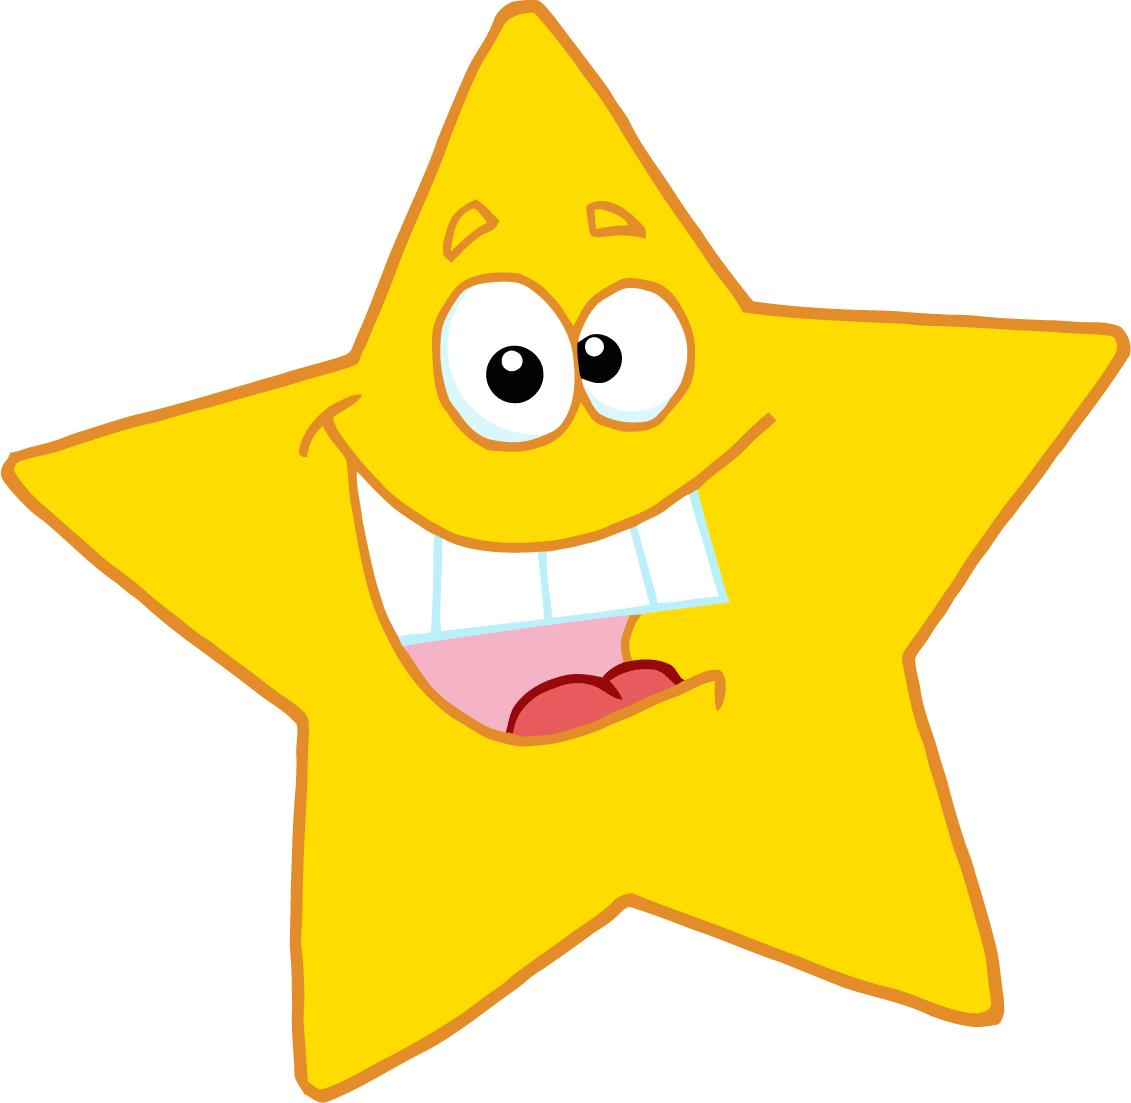 1131x1103 Vibrant Inspiration Star Clipart Clip Art Free Images Cliparting